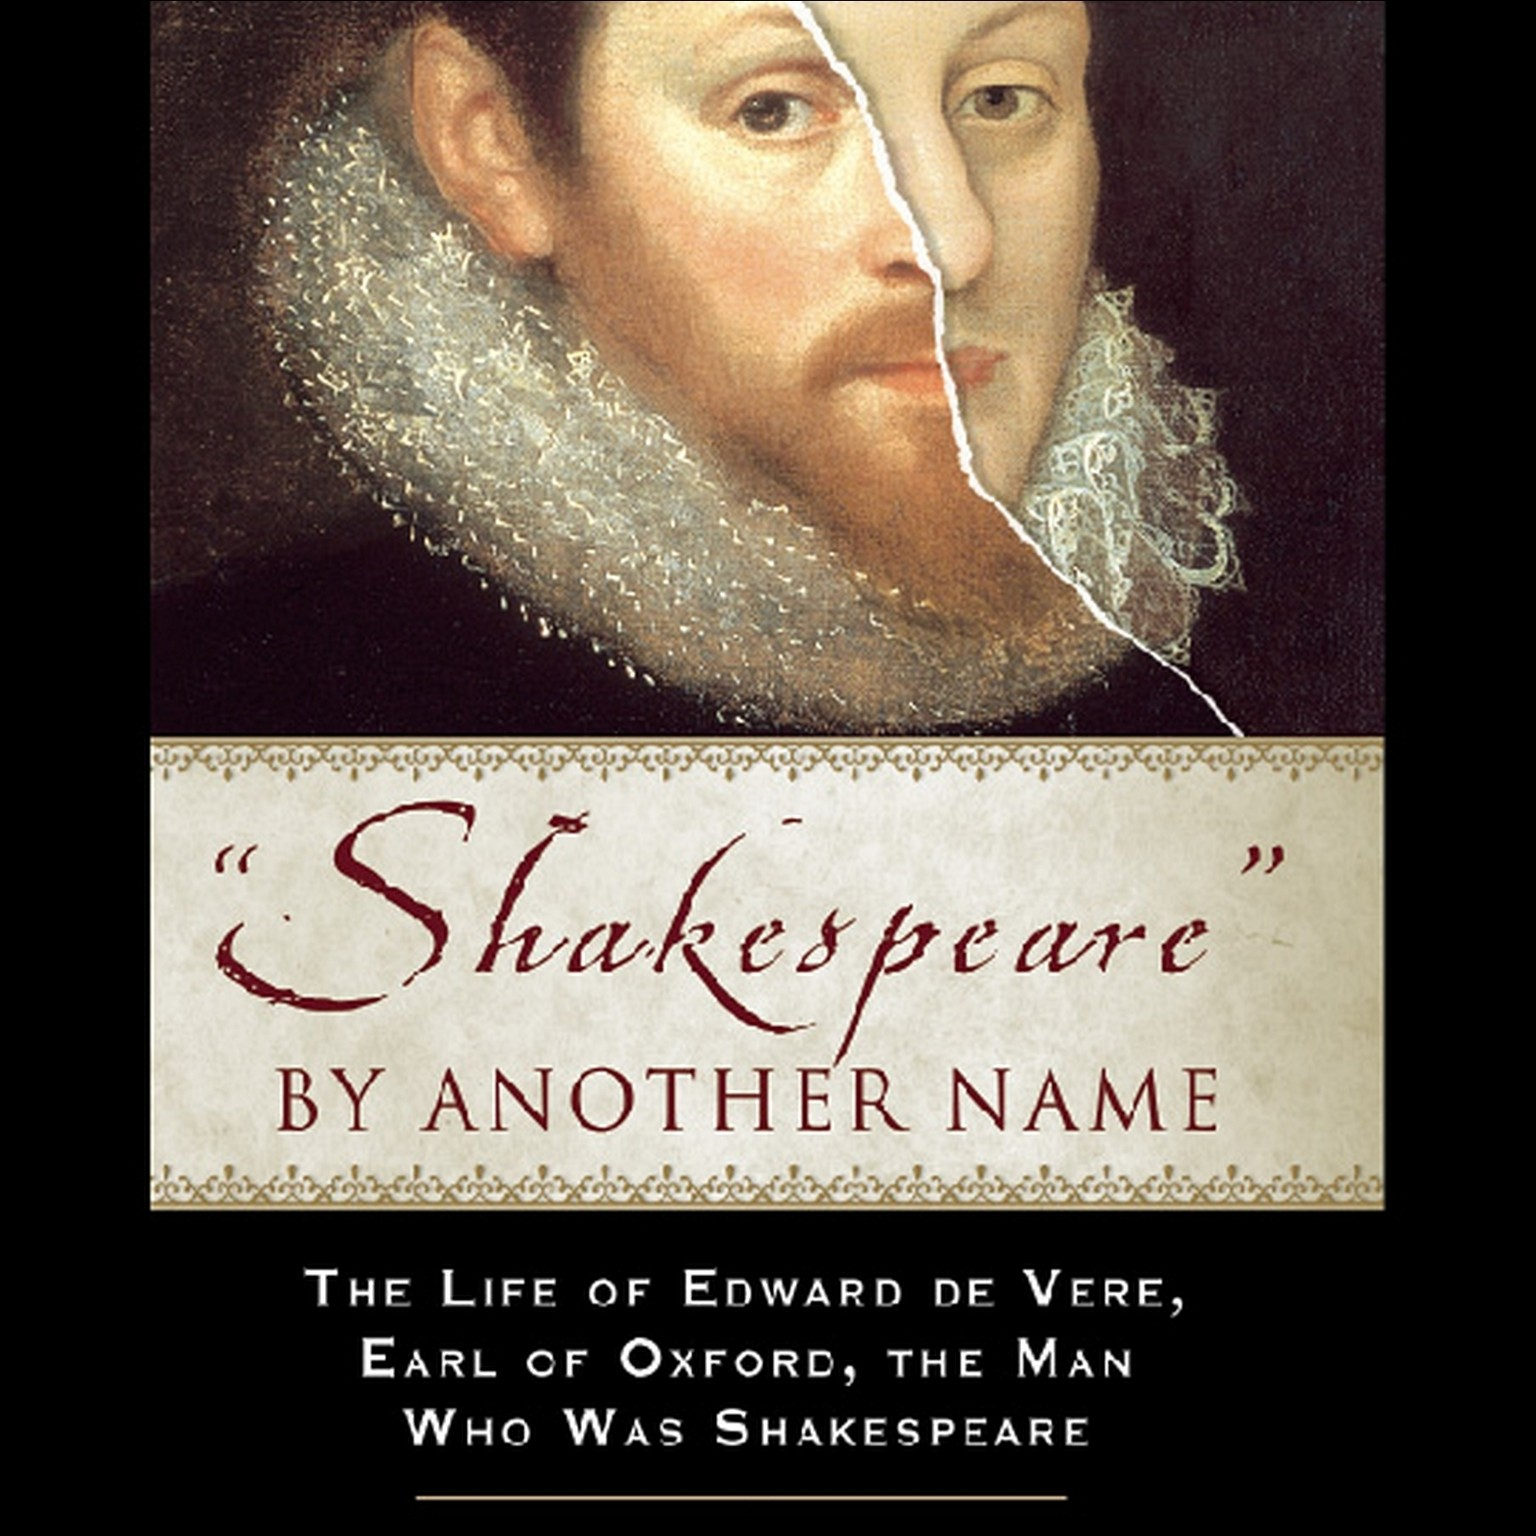 Shakespeare by Another Name, by Mark Kendall Anderson